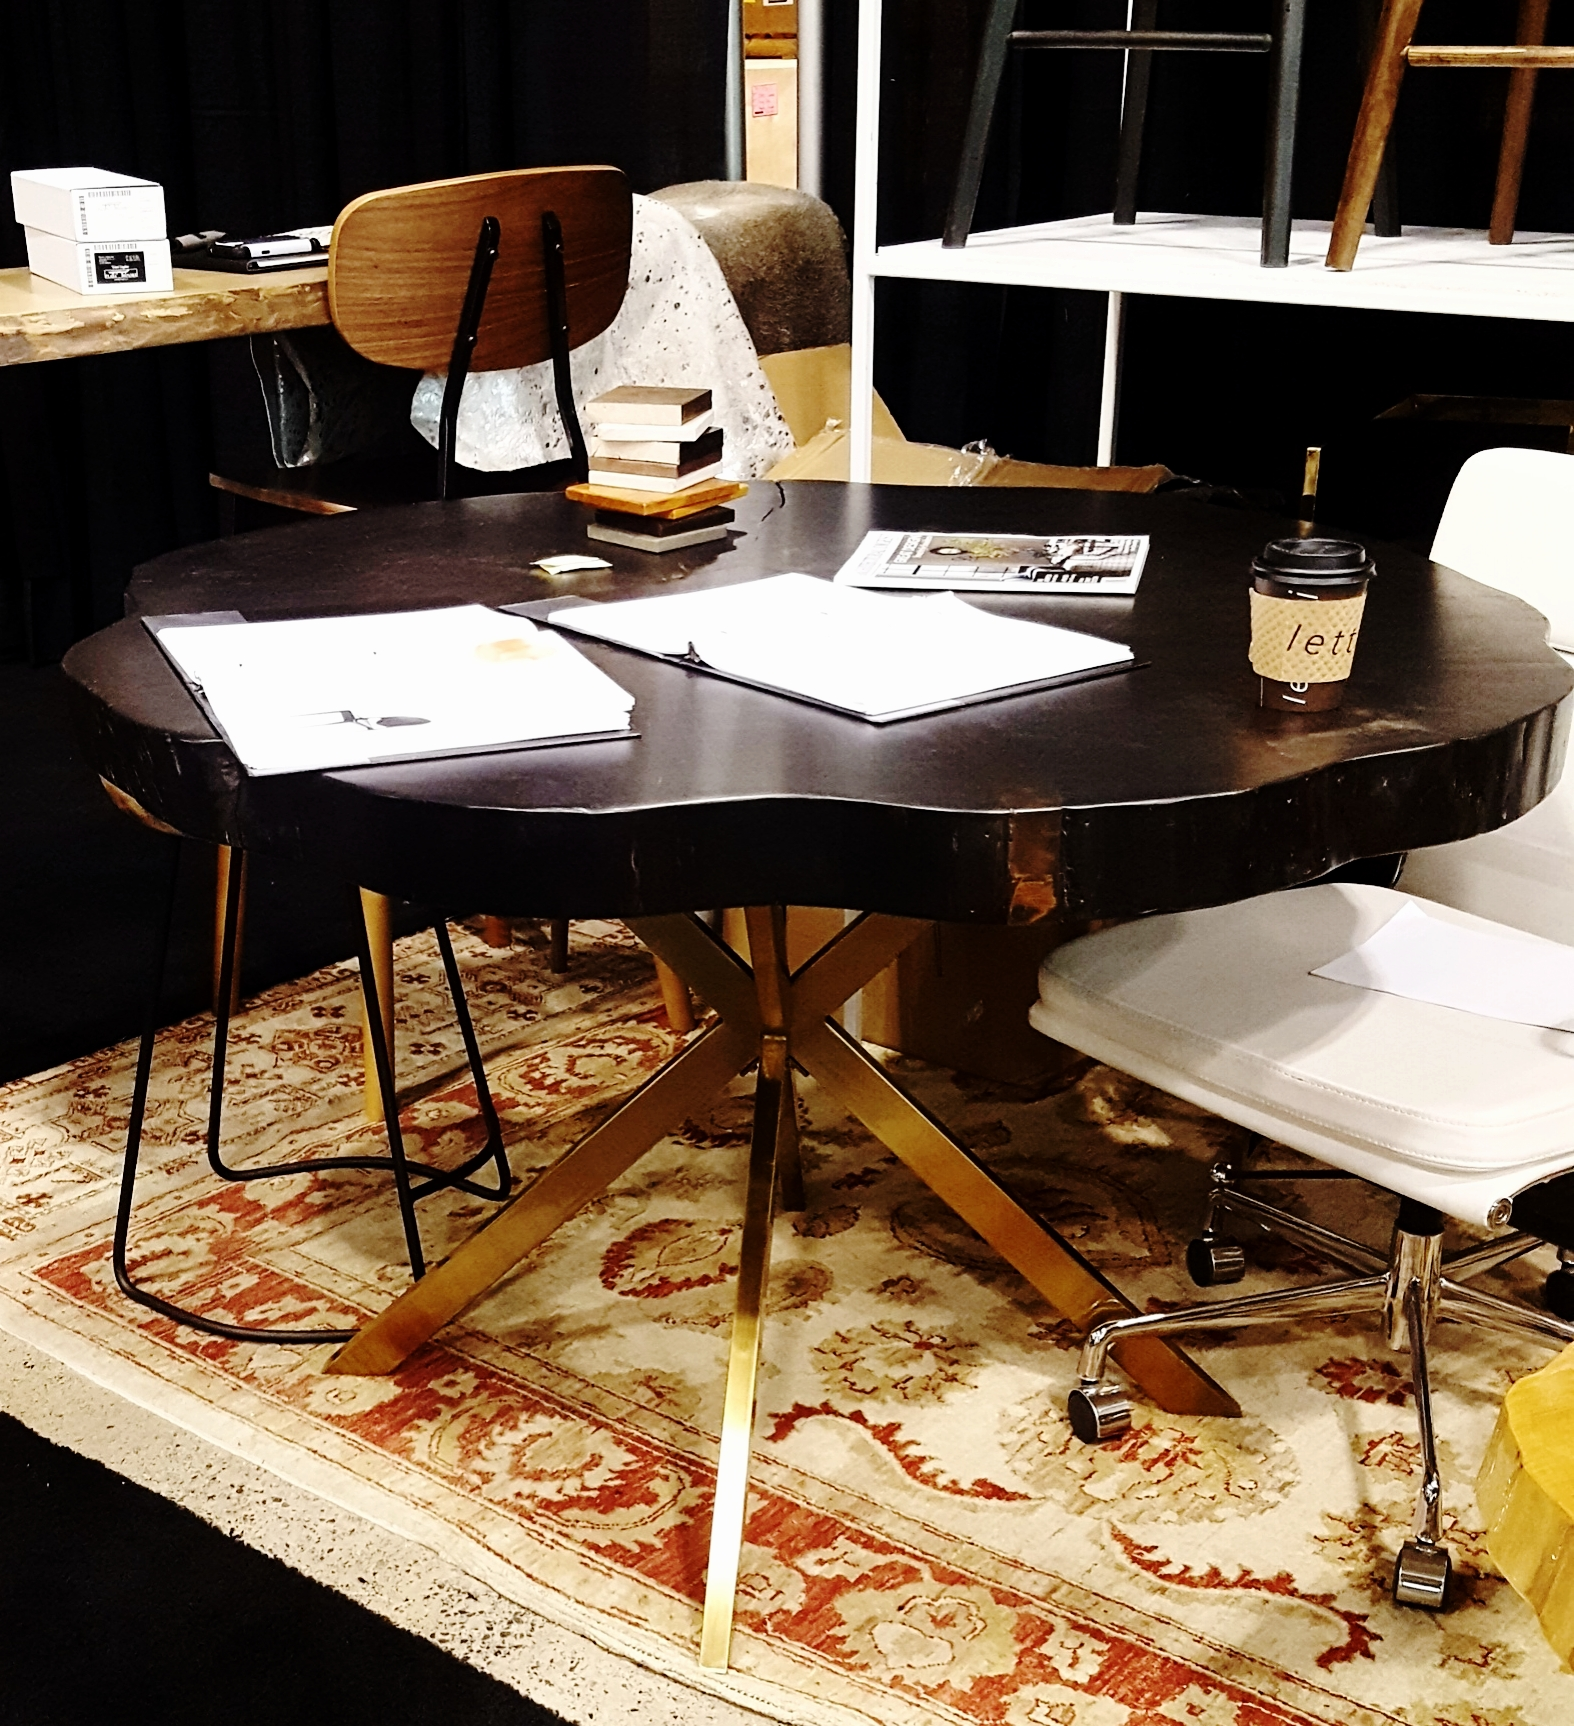 Someone was just working at this table but I loved it so took a photo.